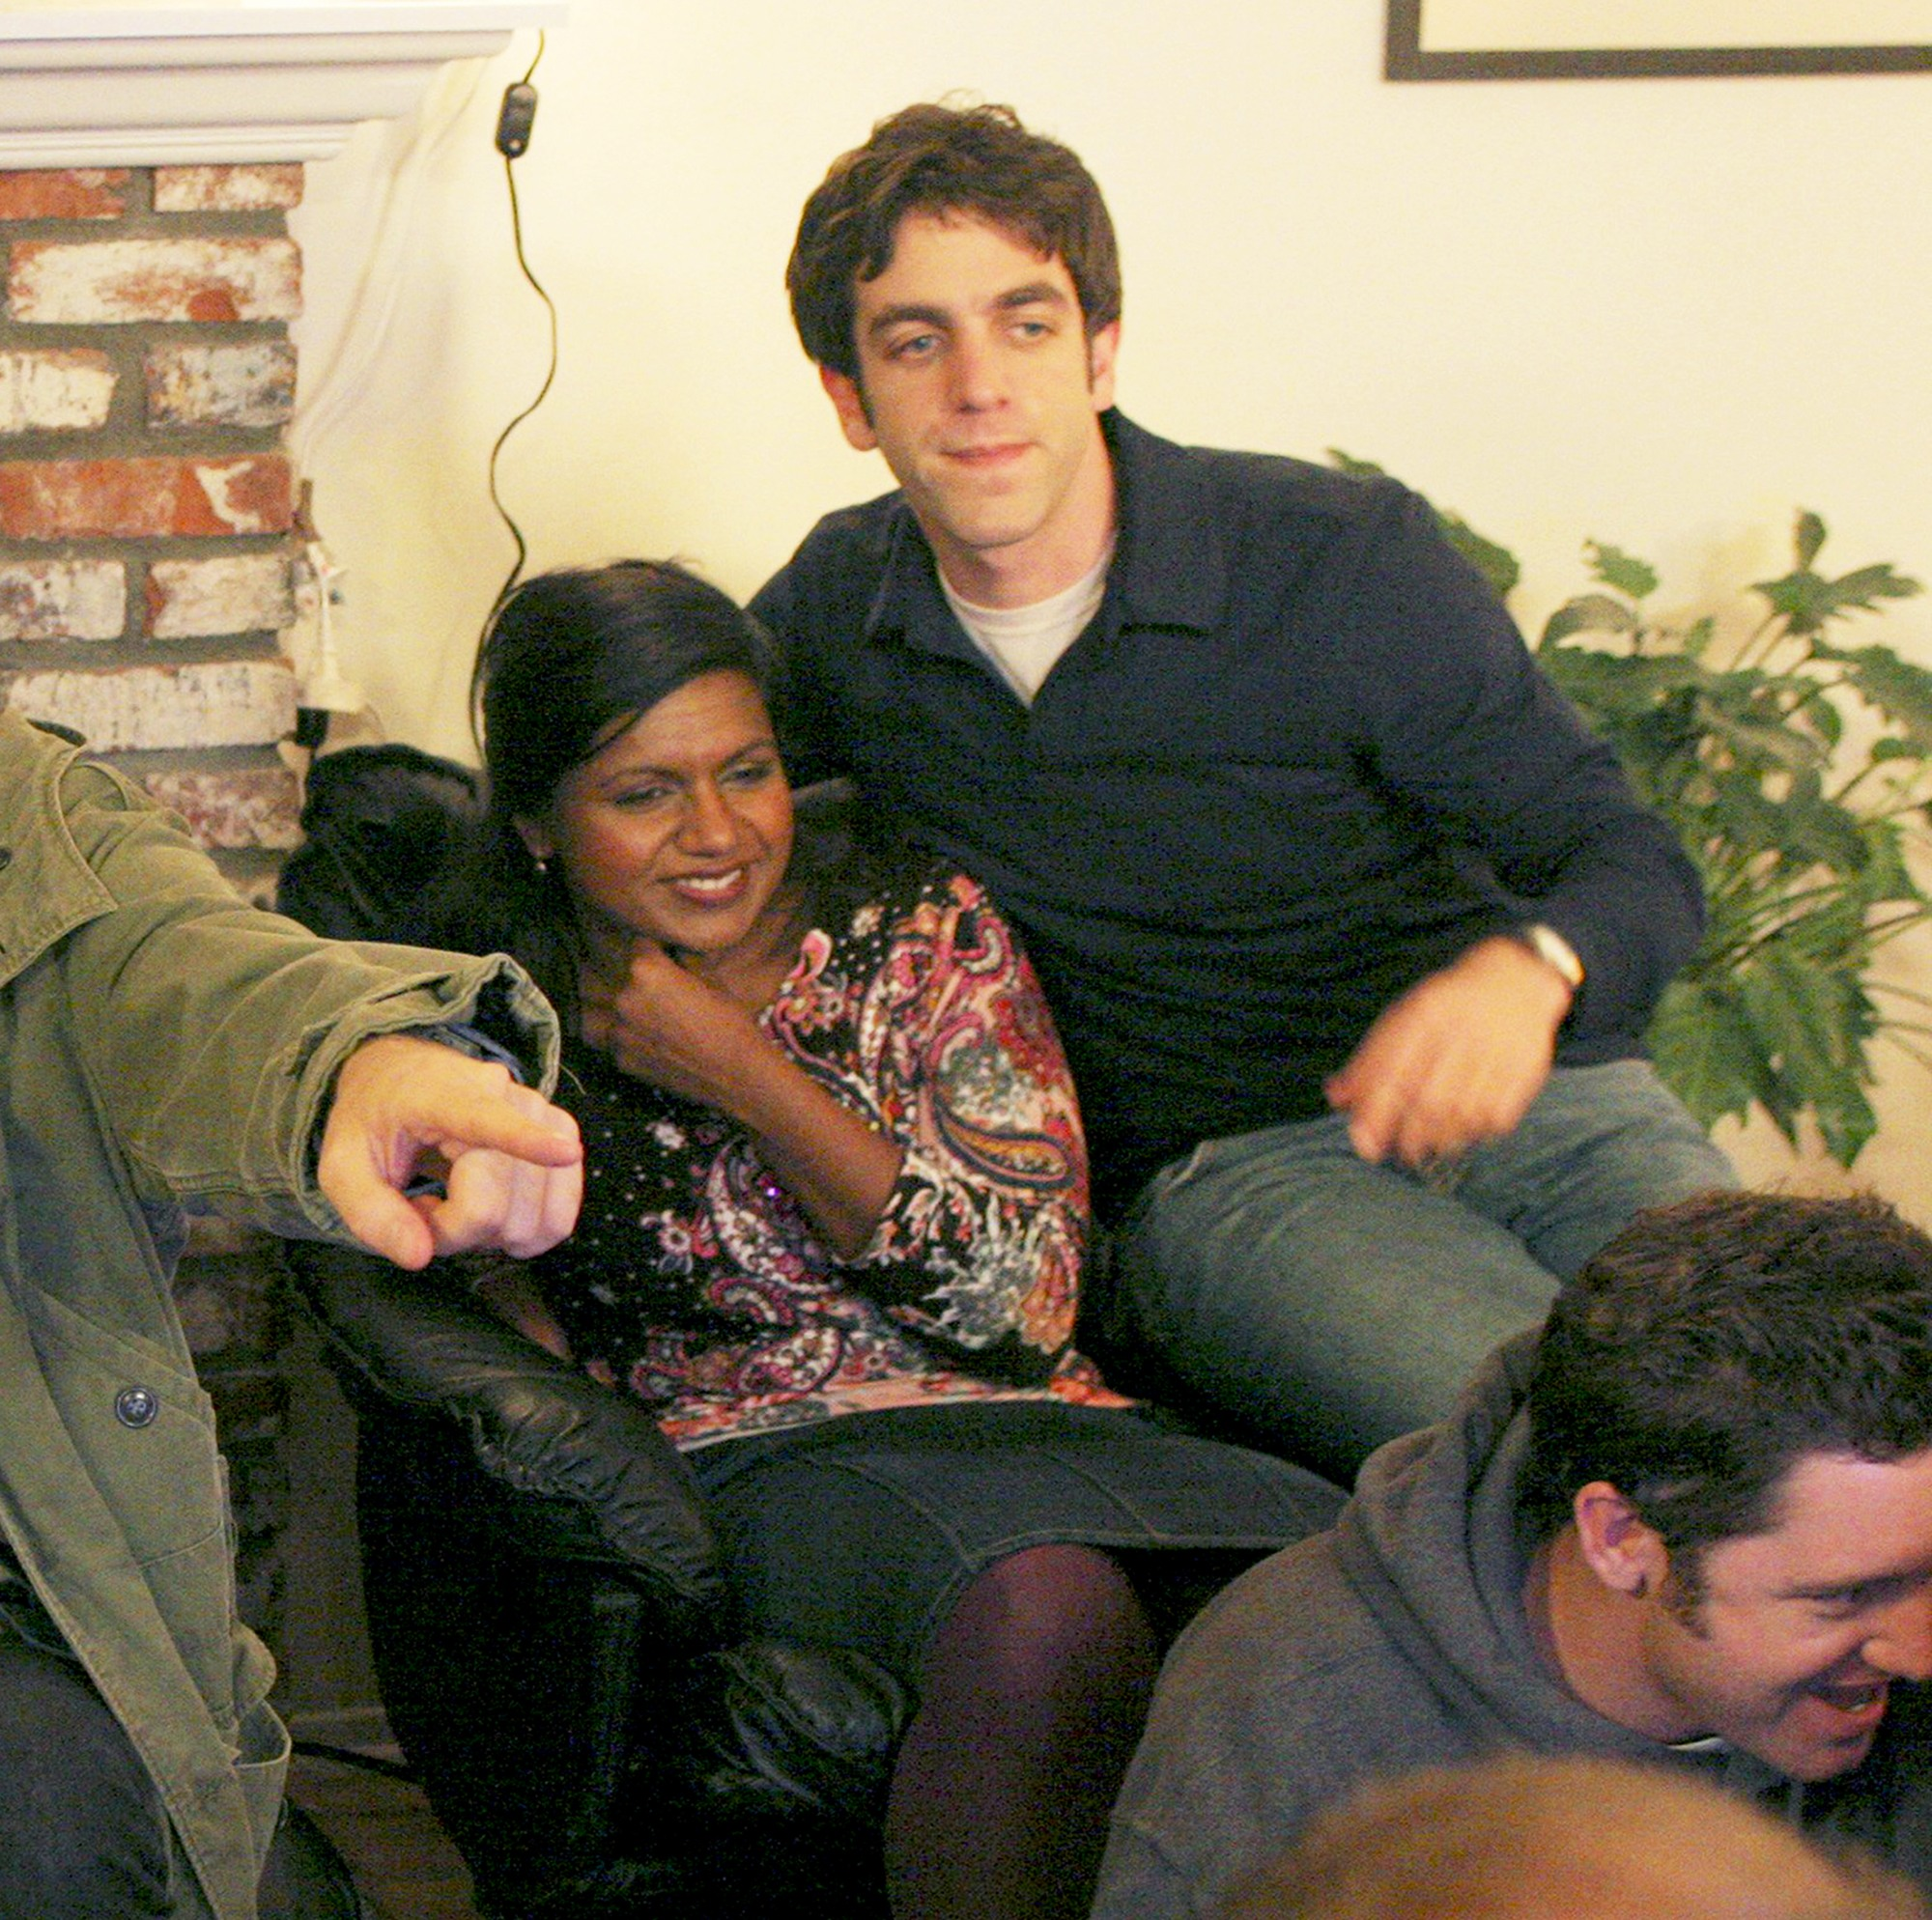 Mindy Kaling and BJ Novak in a candid moment on the set of The Office